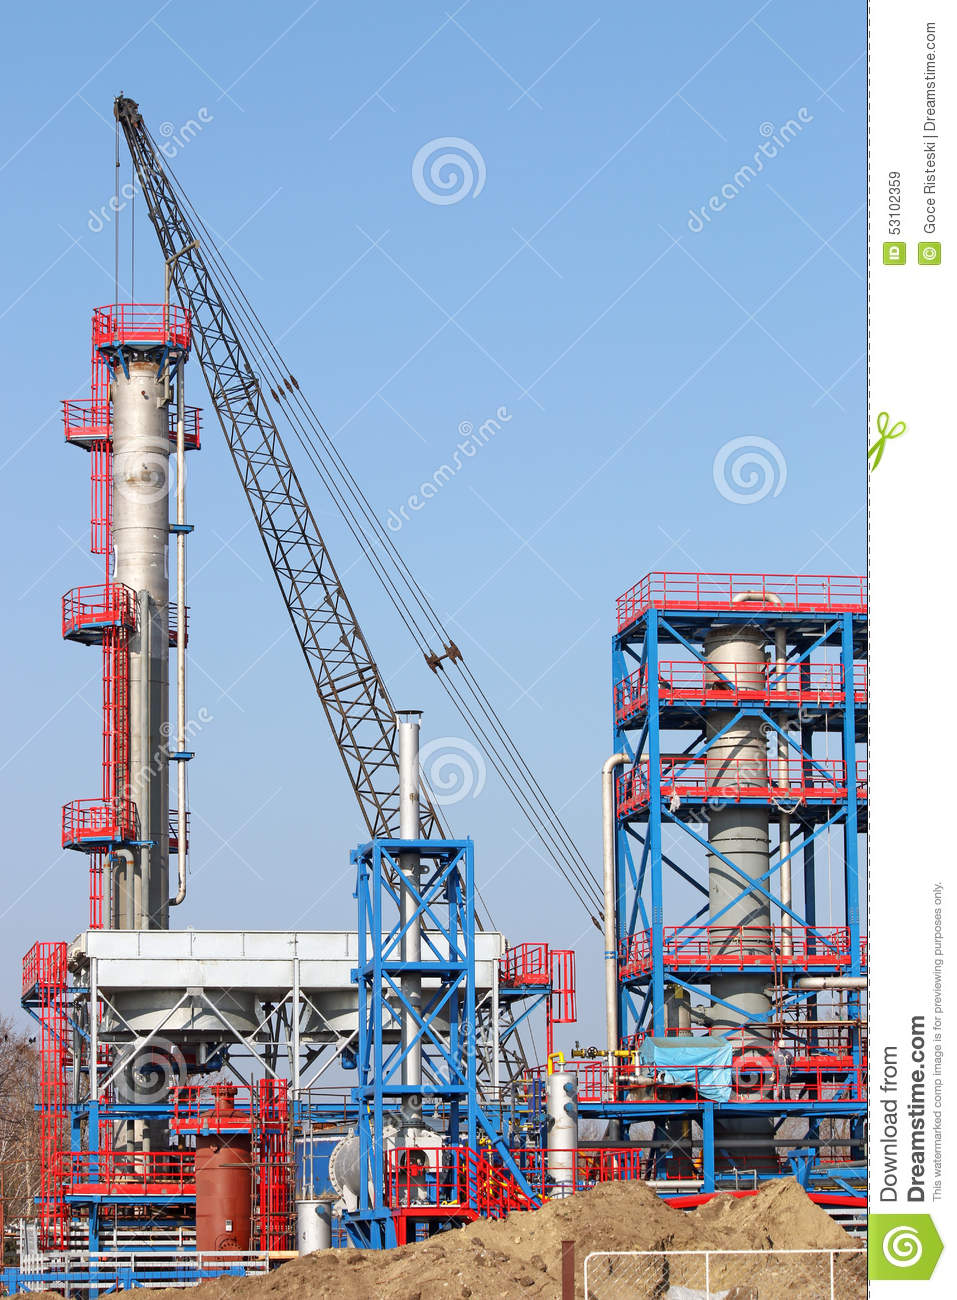 Petrochemical Plant Construction Site Stock Image - Image of